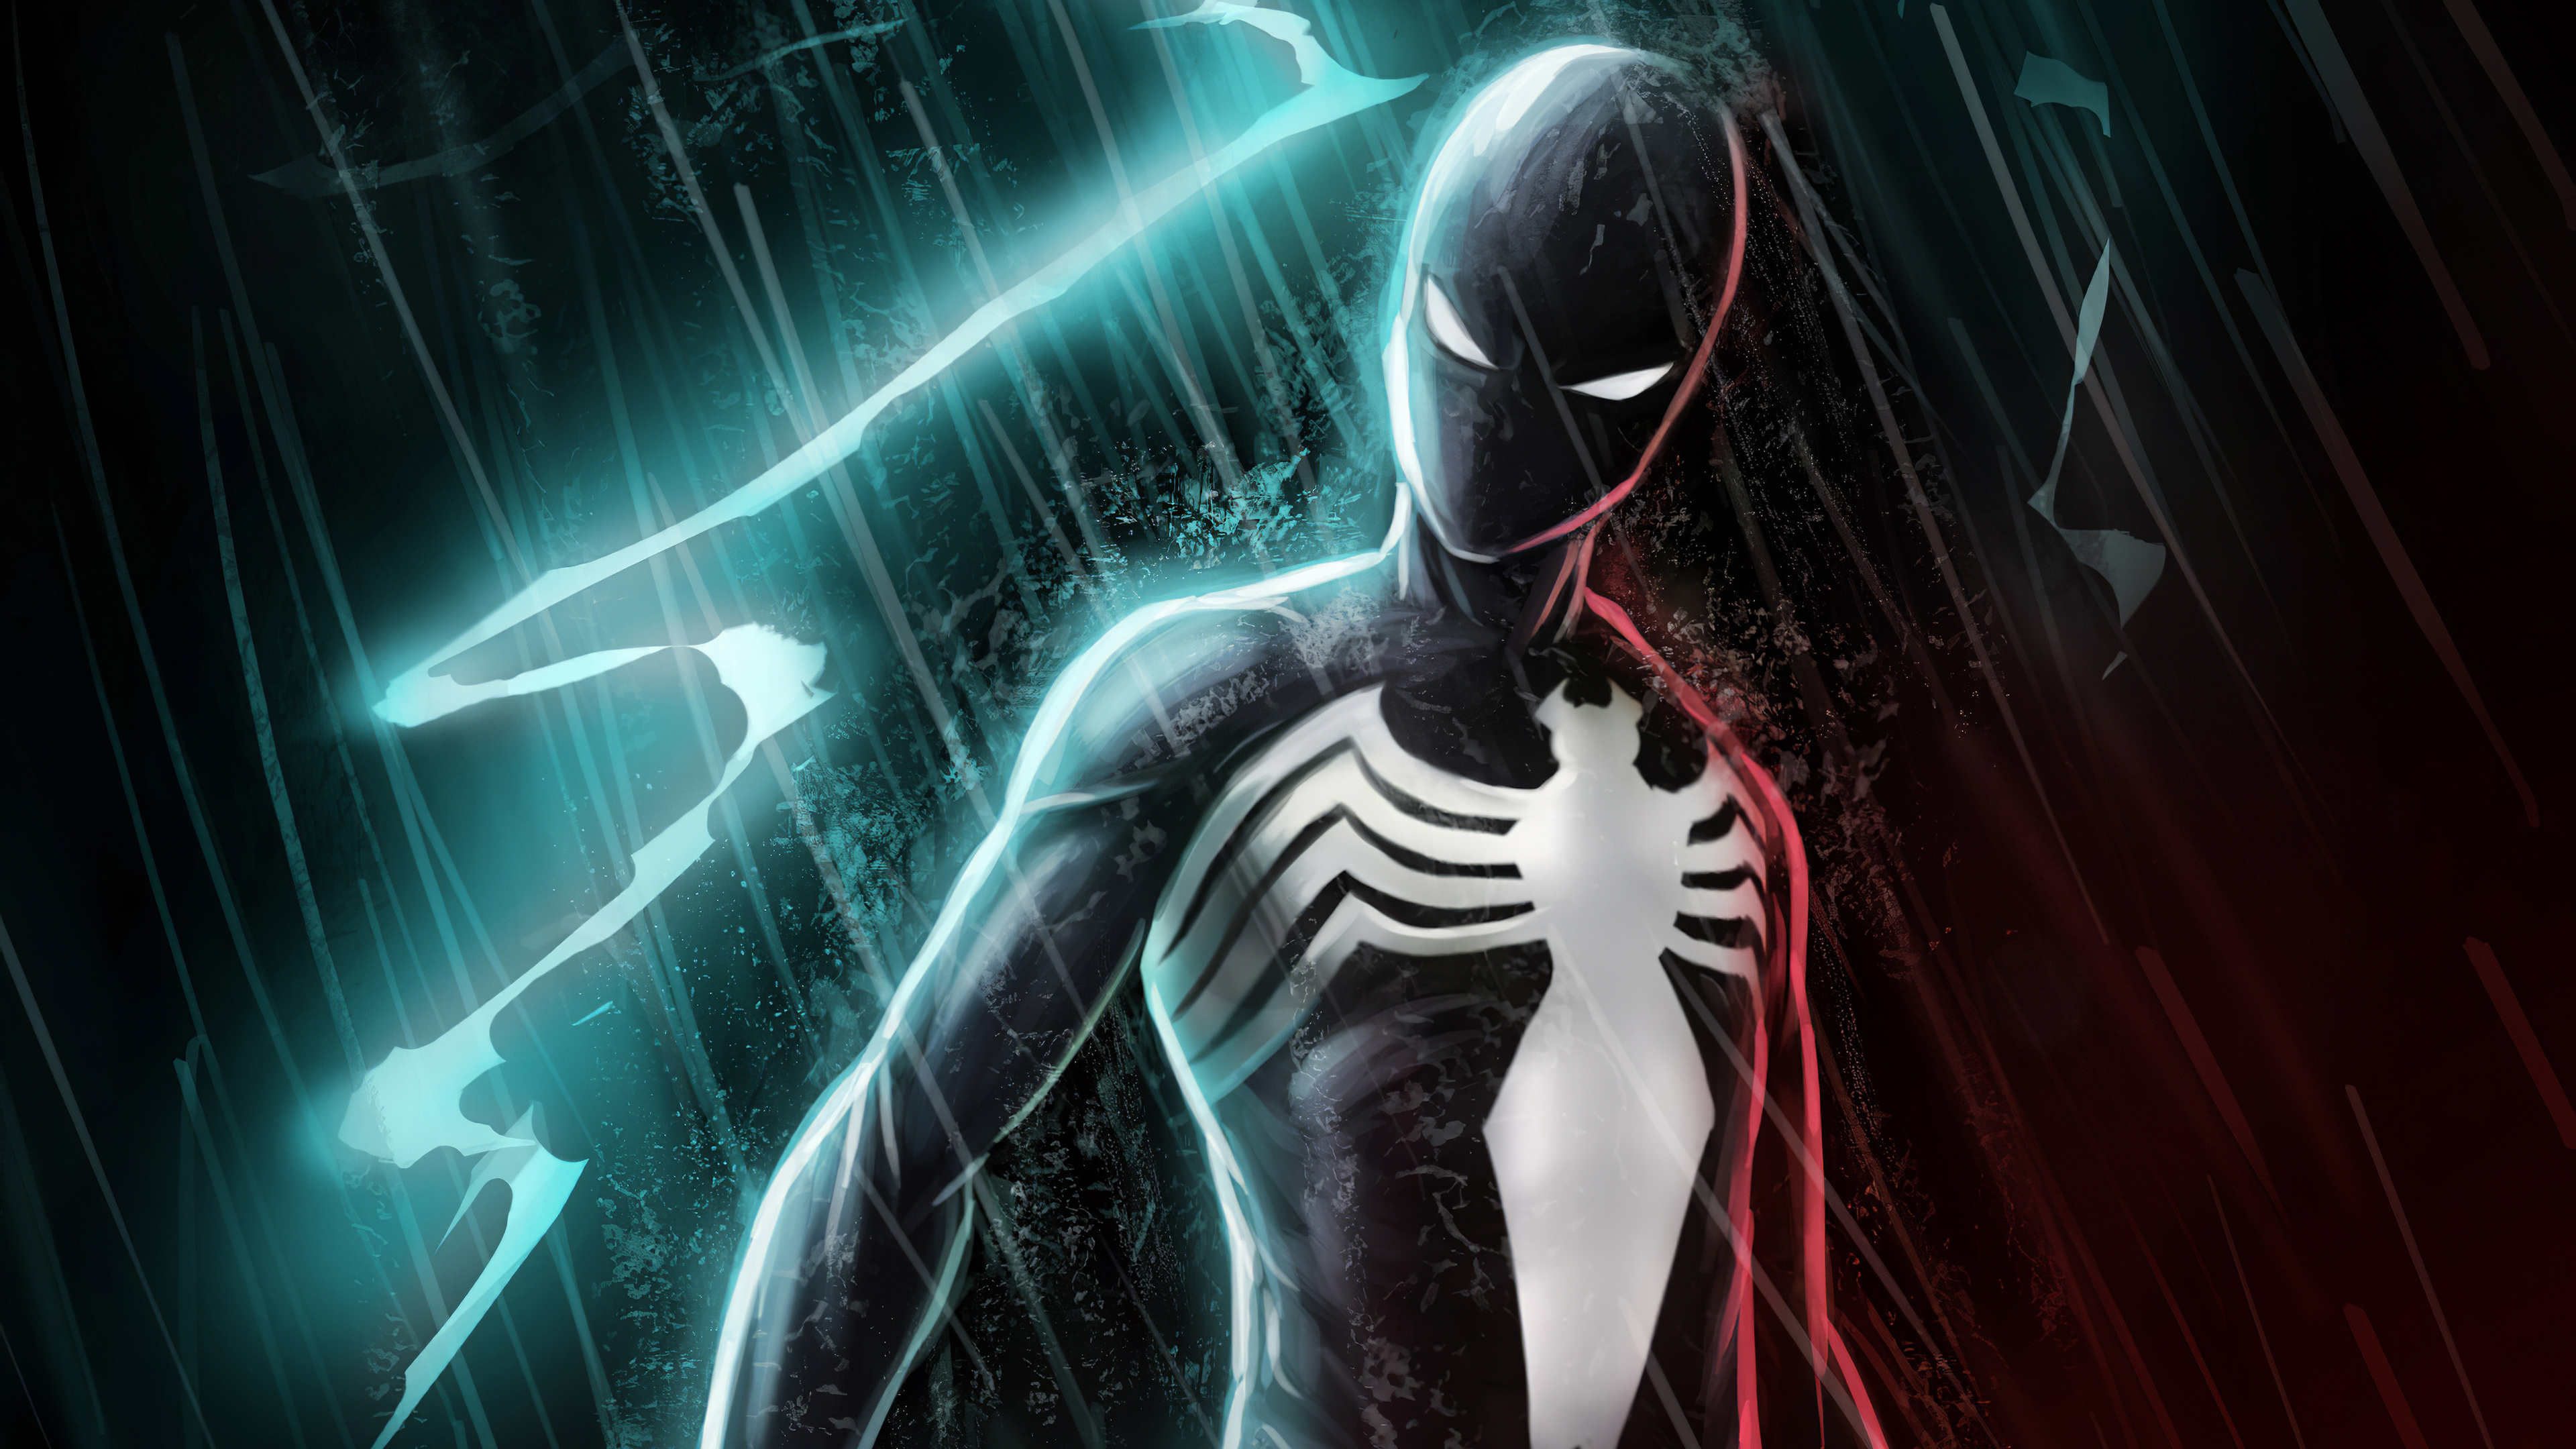 black spiderman lightning 1572369002 - Black Spiderman Lightning - superheroes wallpapers, spiderman wallpapers, hd-wallpapers, digital art wallpapers, artwork wallpapers, artstation wallpapers, artist wallpapers, 4k-wallpapers